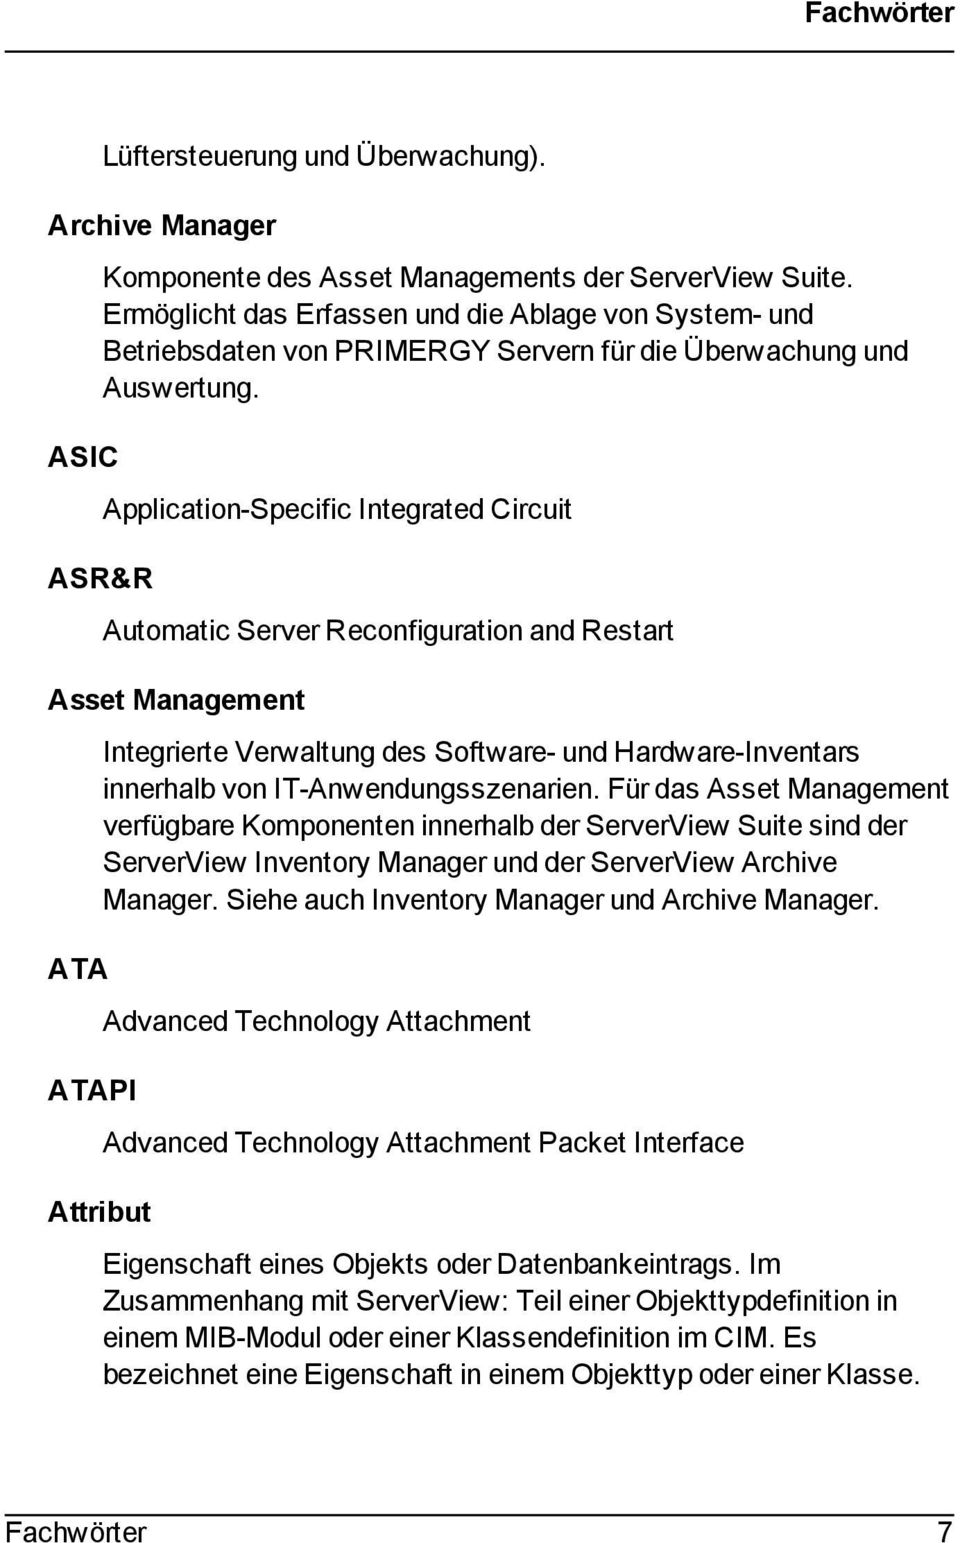 ASR&R Application-Specific Integrated Circuit Automatic Server Reconfiguration and Restart Asset Management ATA ATAPI Integrierte Verwaltung des Software- und Hardware-Inventars innerhalb von